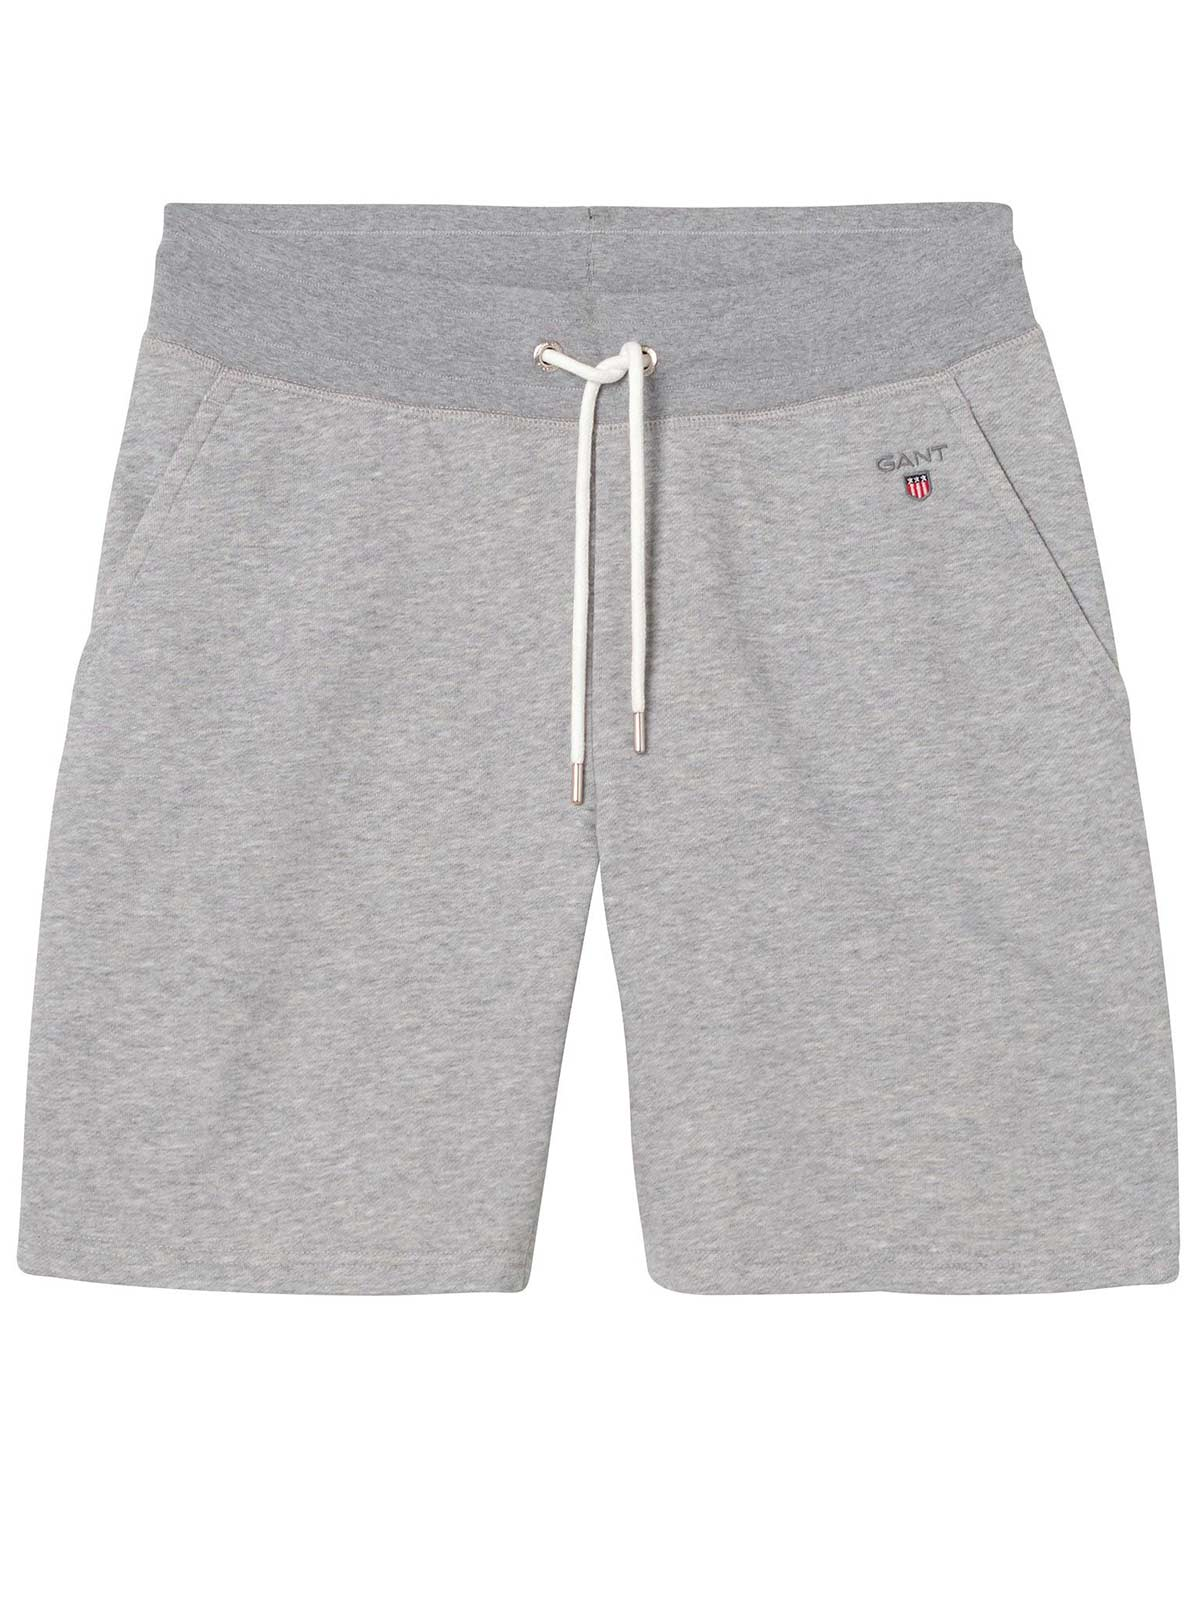 Picture of GANT | Men's Original College Sweat Shorts